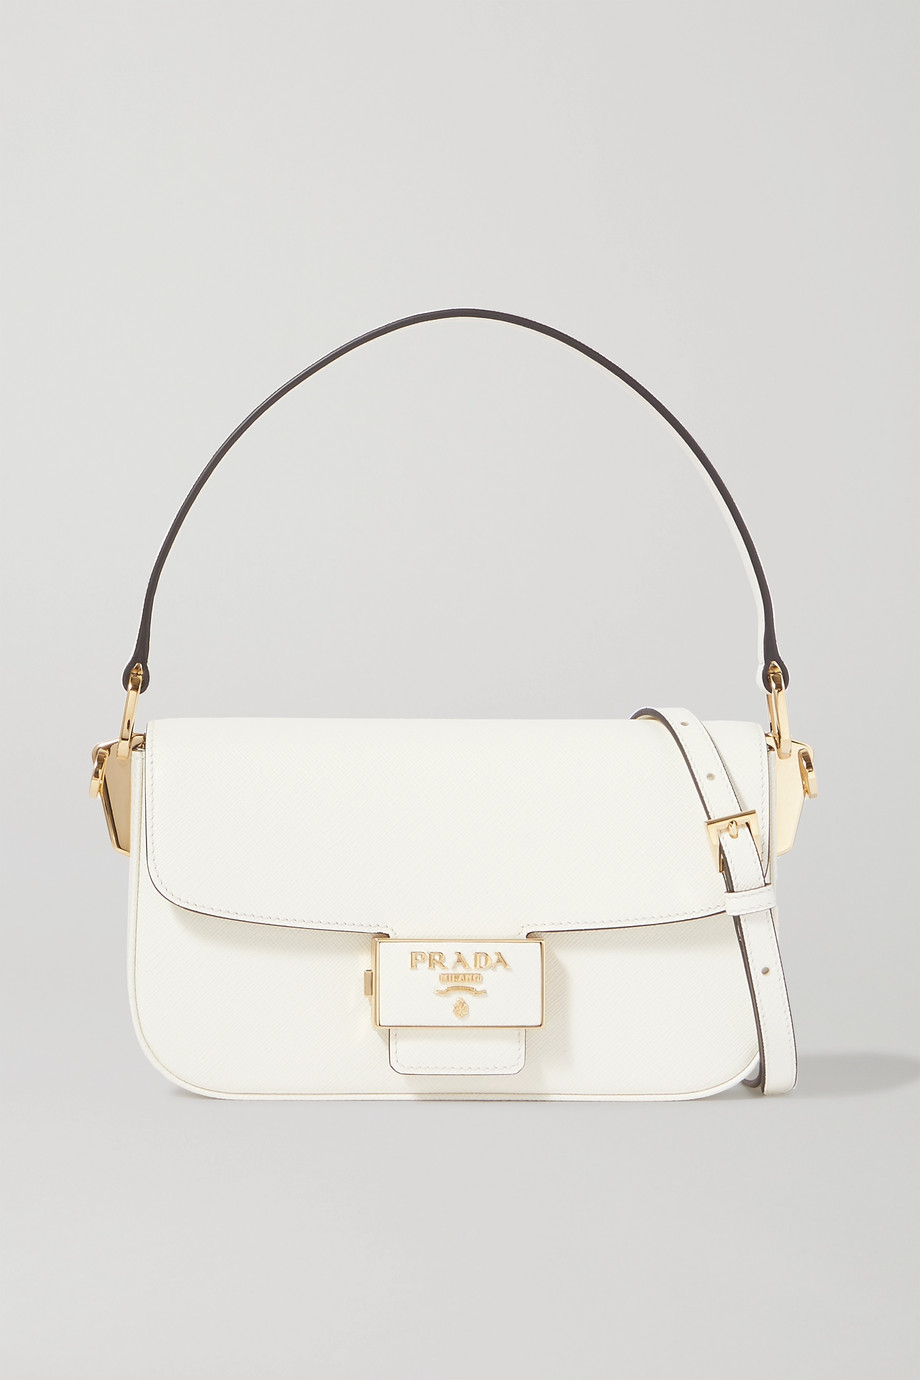 Prada Ensemble textured-leather shoulder bag